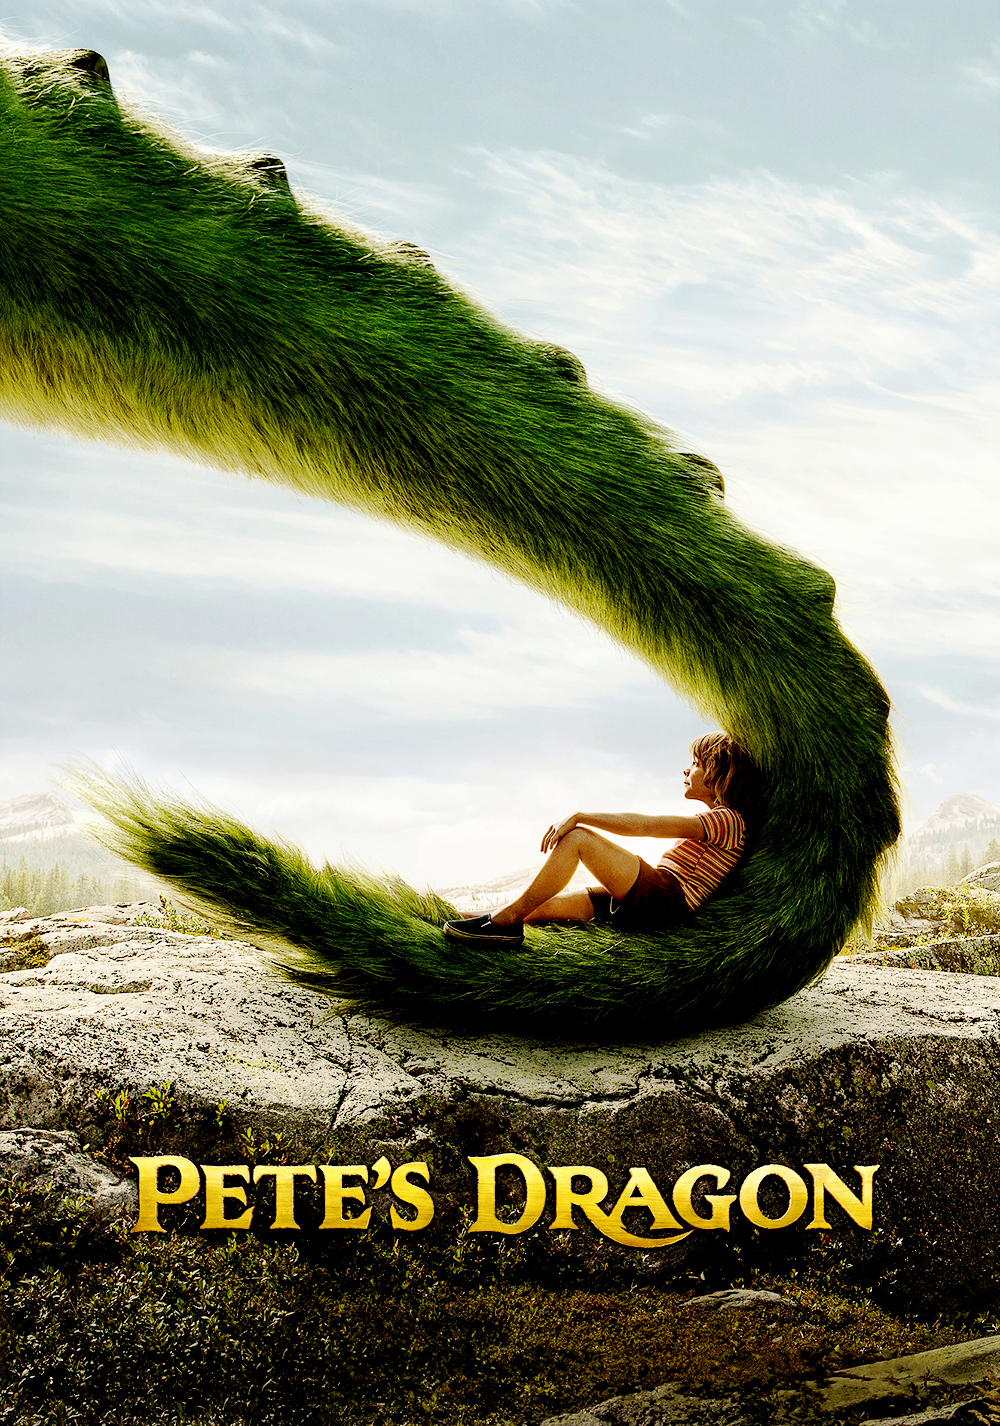 PETES DRAGON (2016) MOVIE TAMIL DUBBED HD